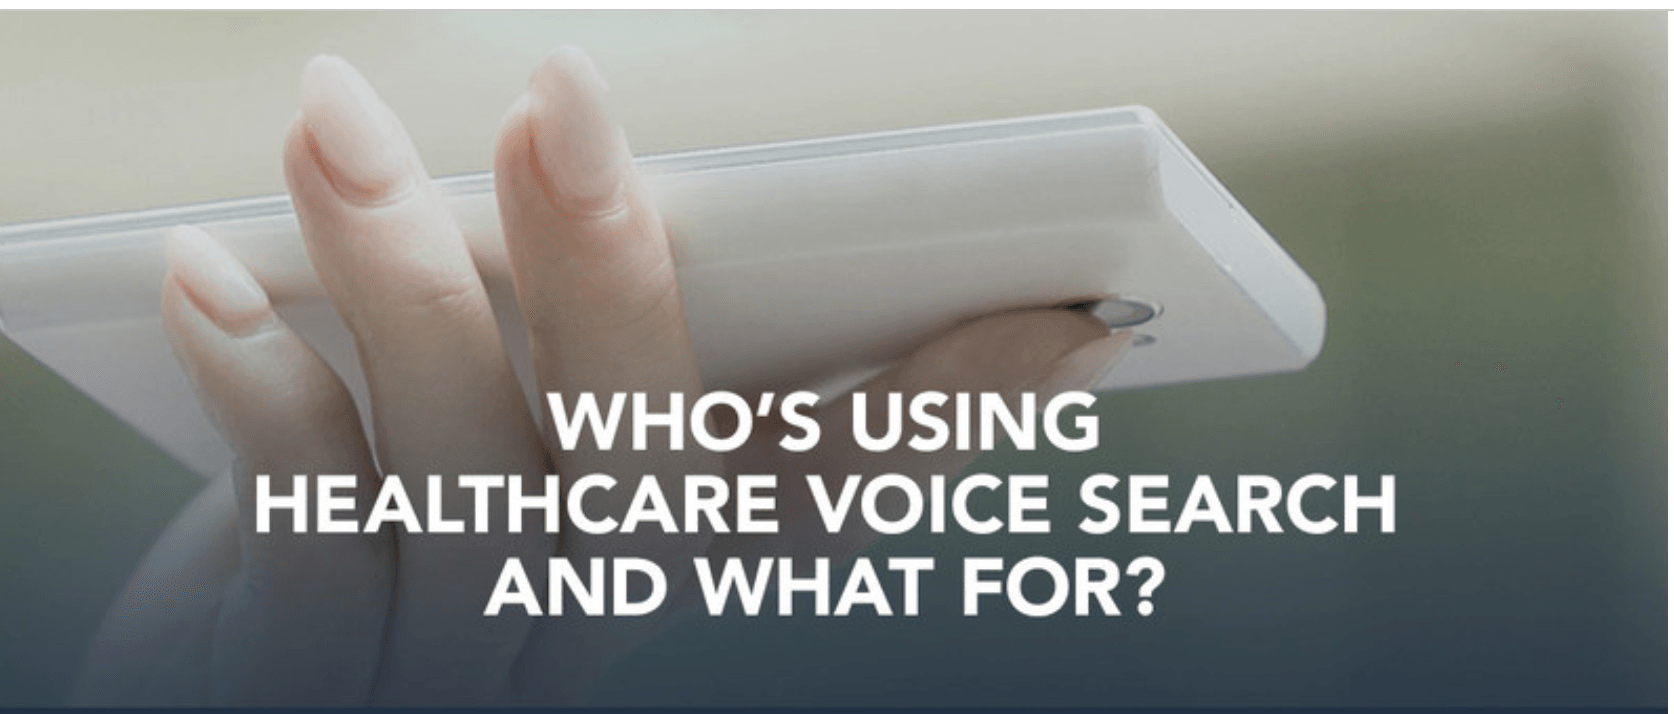 Voice Search in Healthcare: Using Voice-Enabled Devices for Healthcare Information